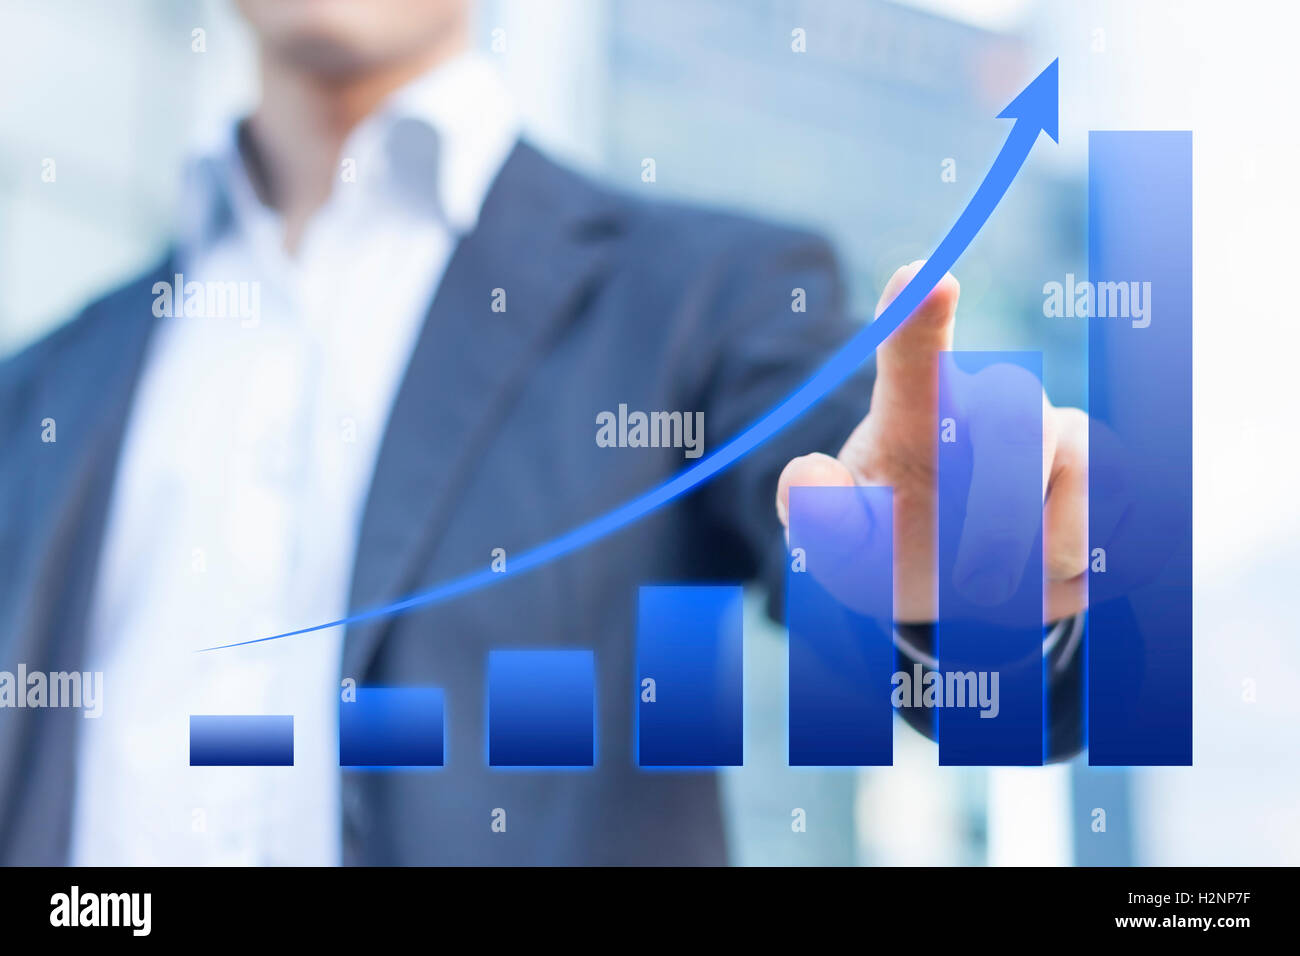 Business consultant presenting a blue chart about growing markets with office buildings in background Stock Photo